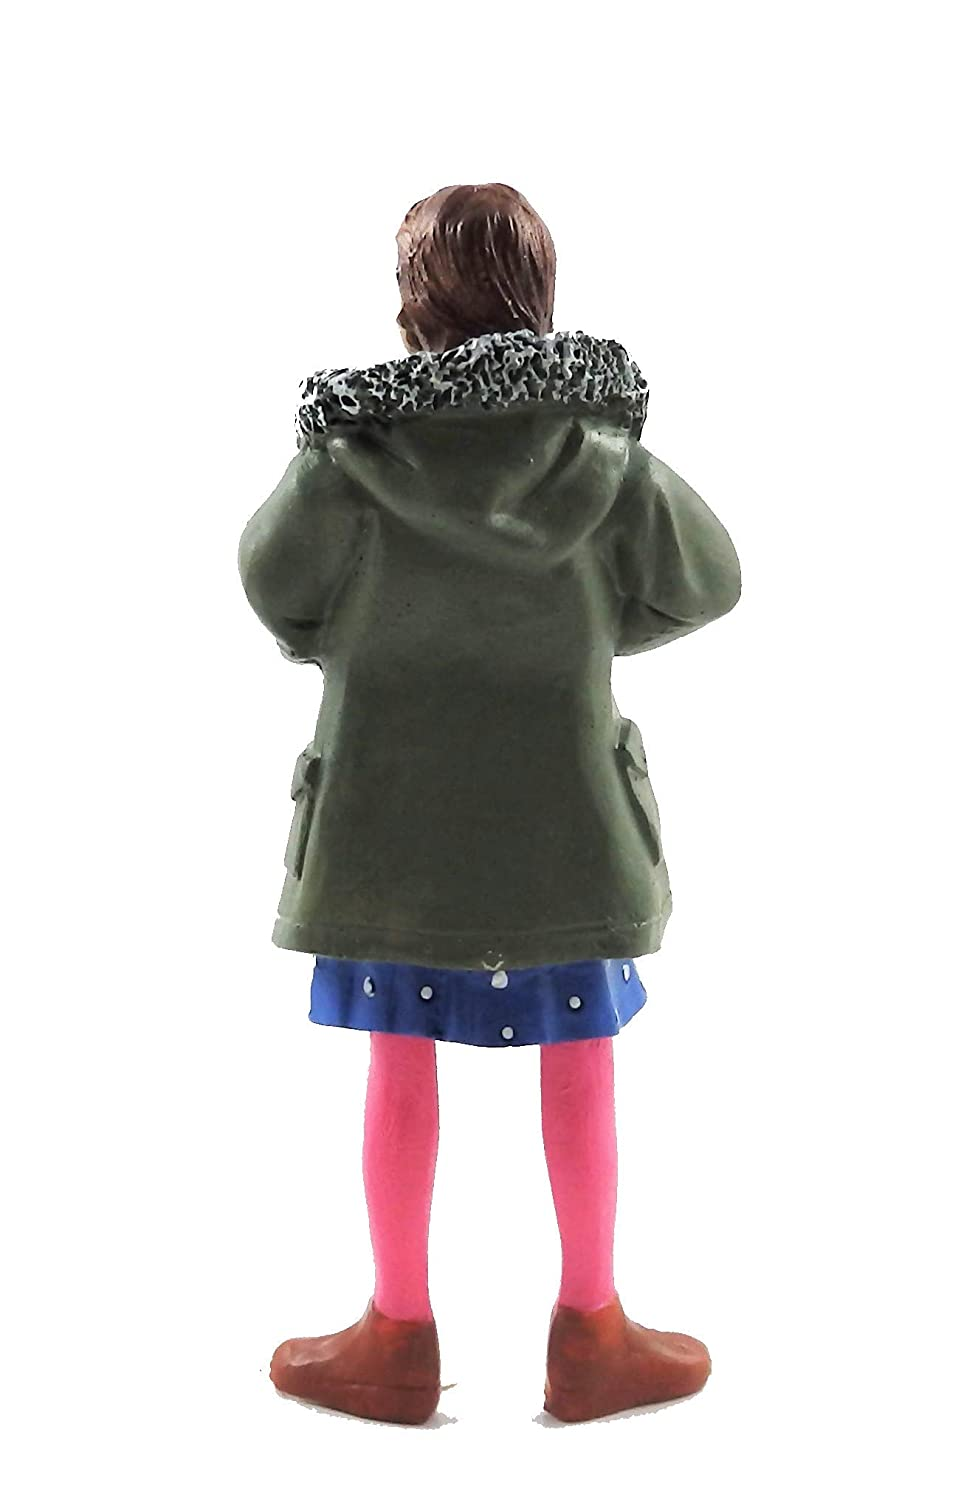 Melody Jane Dolls House People Modern Girl in Parka 1:12 Scale Resin Figure